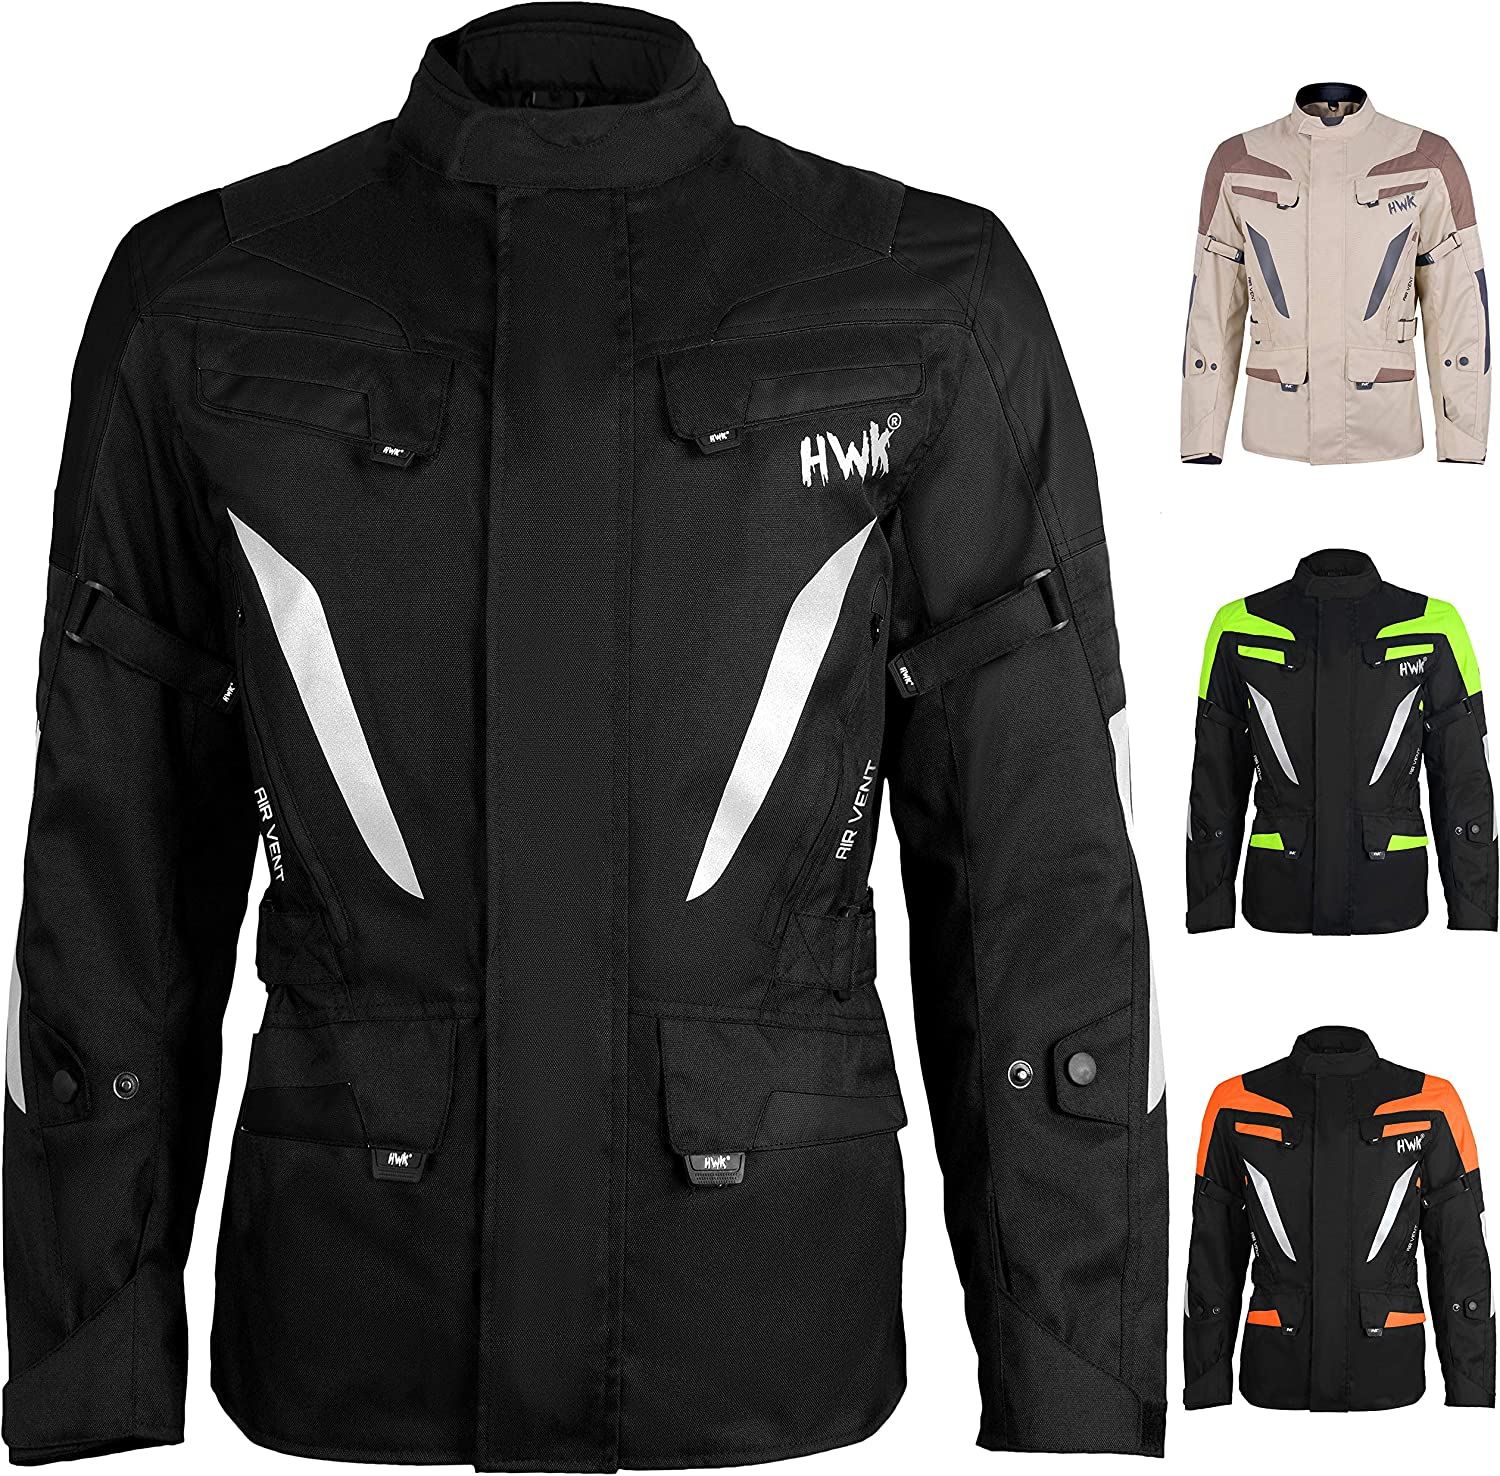 Jet-Black, M Adventure//Touring Mens Motorcycle Jacket Adv Dual Sport Racing CE Armored Waterproof Windproof Jackets All-Weather